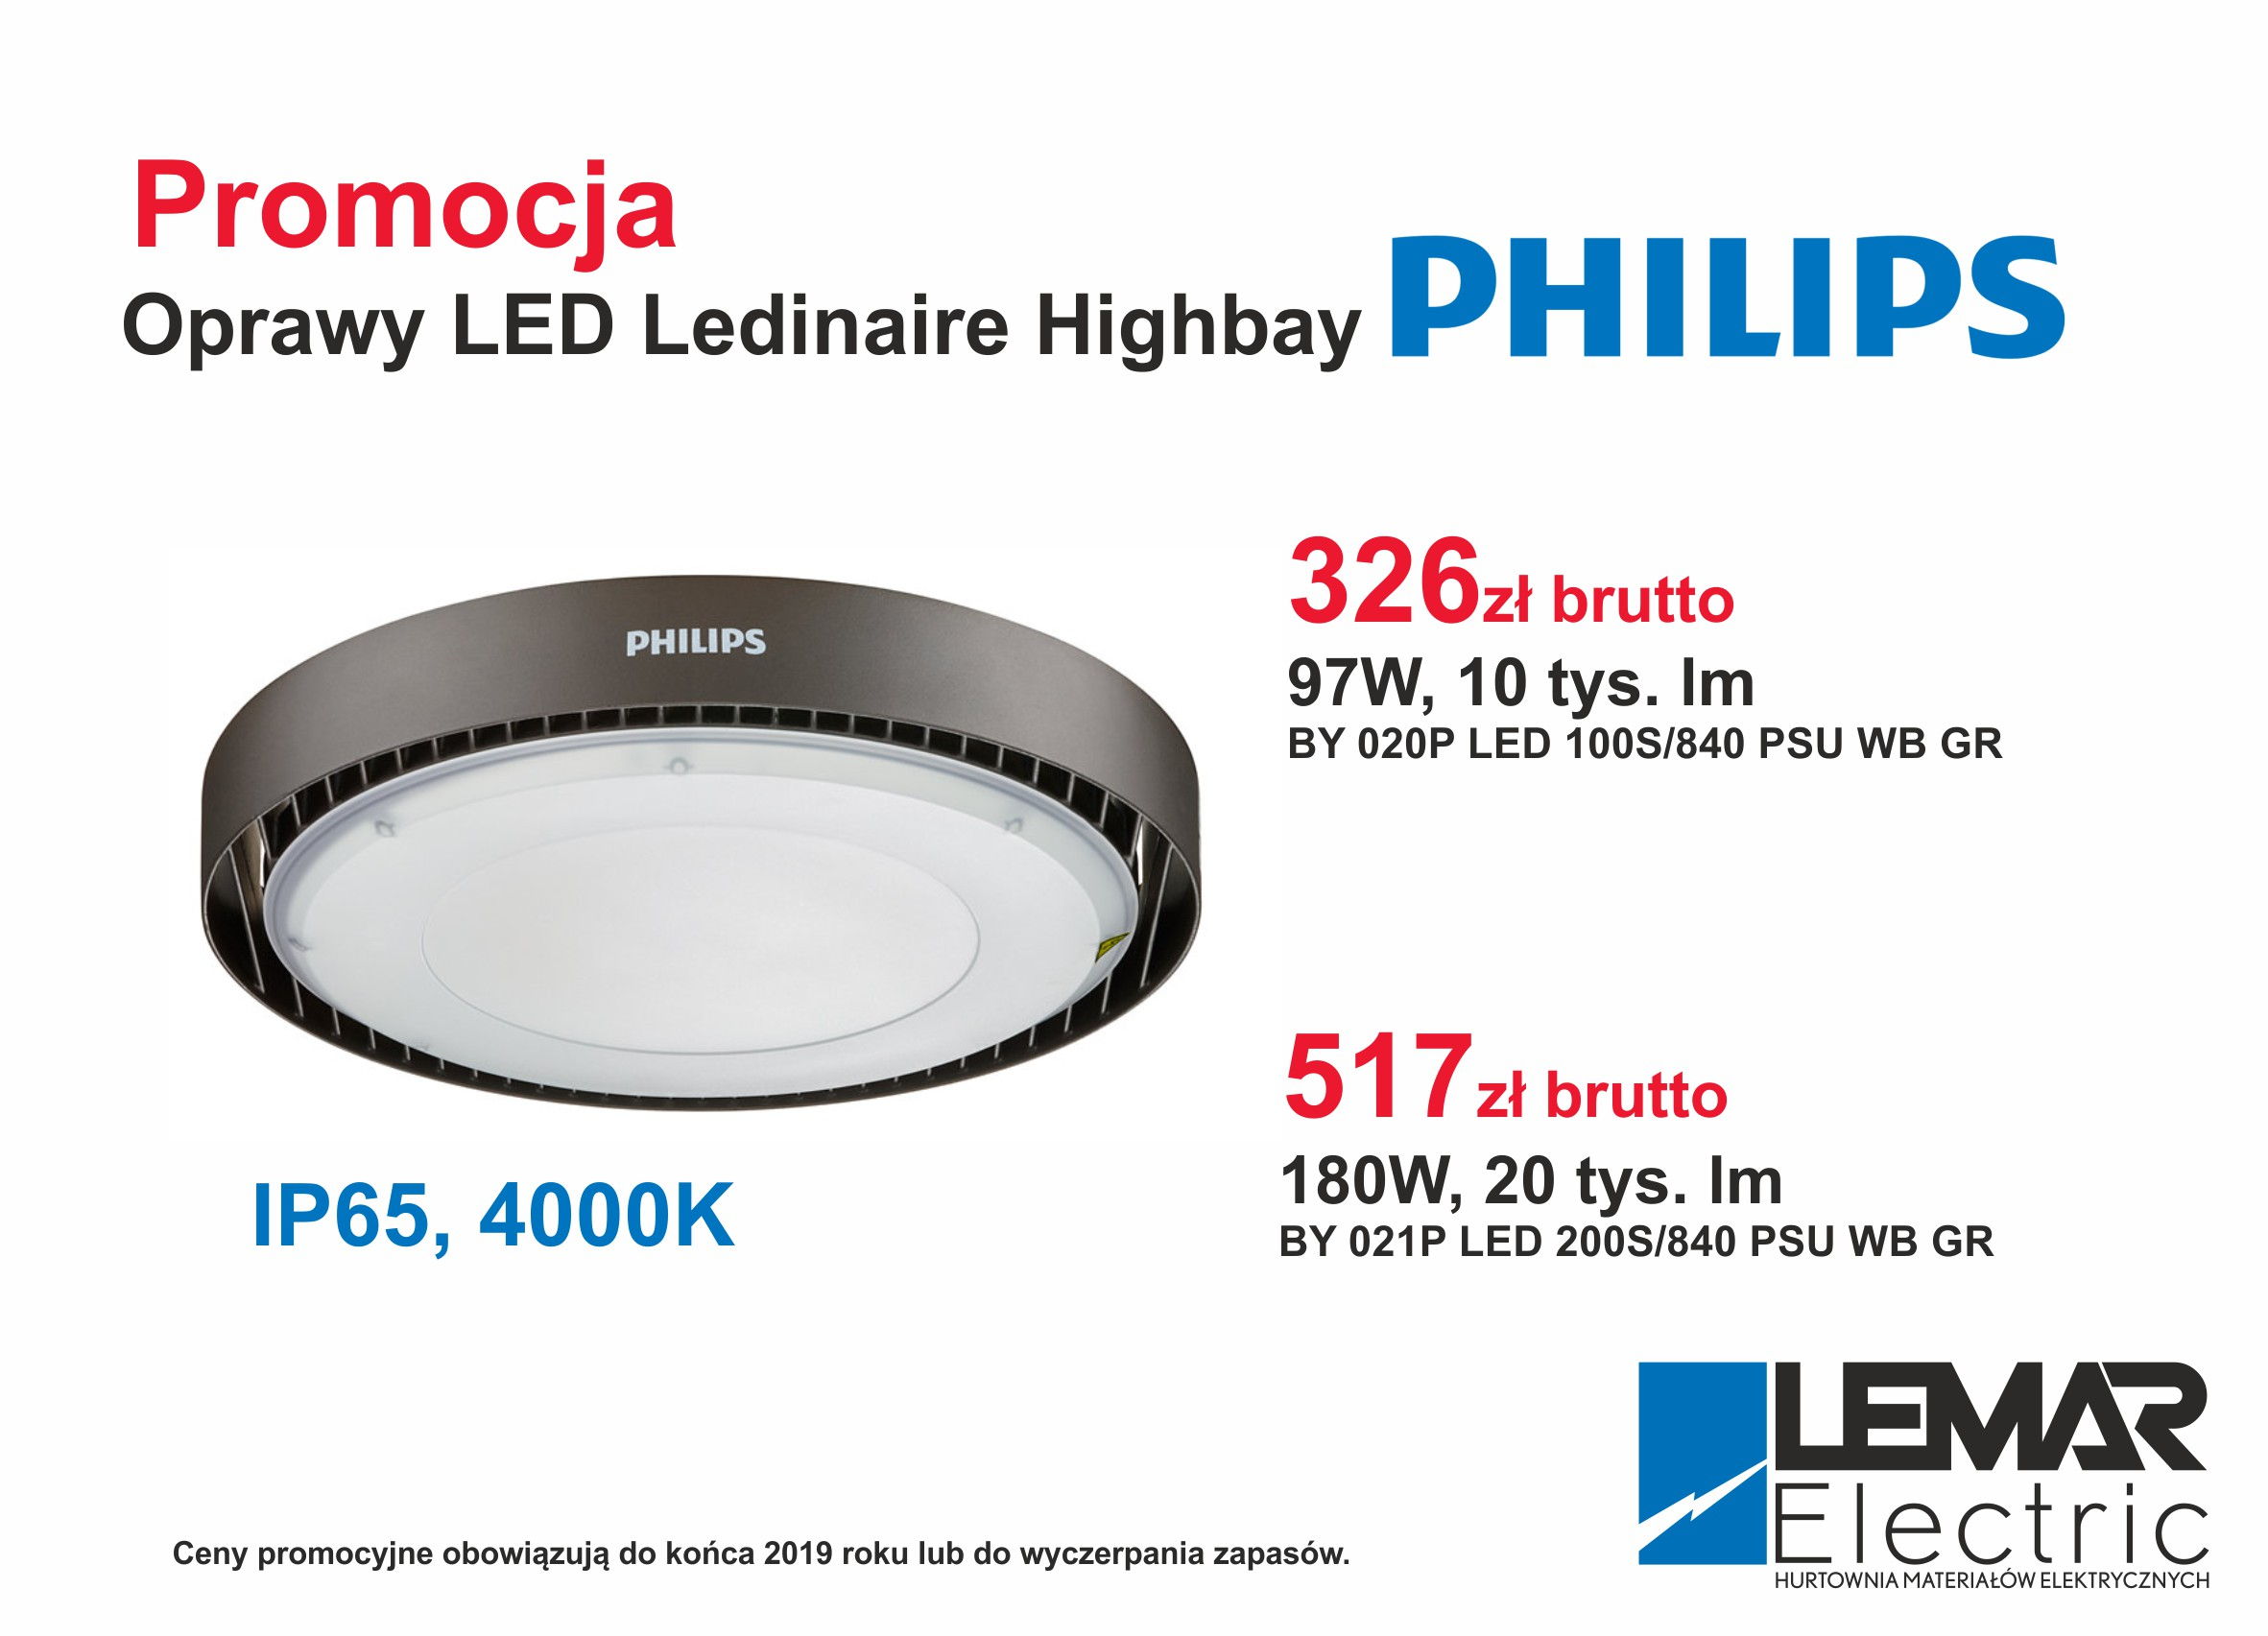 https://www.lemarelectric.pl/img/philips081.jpg